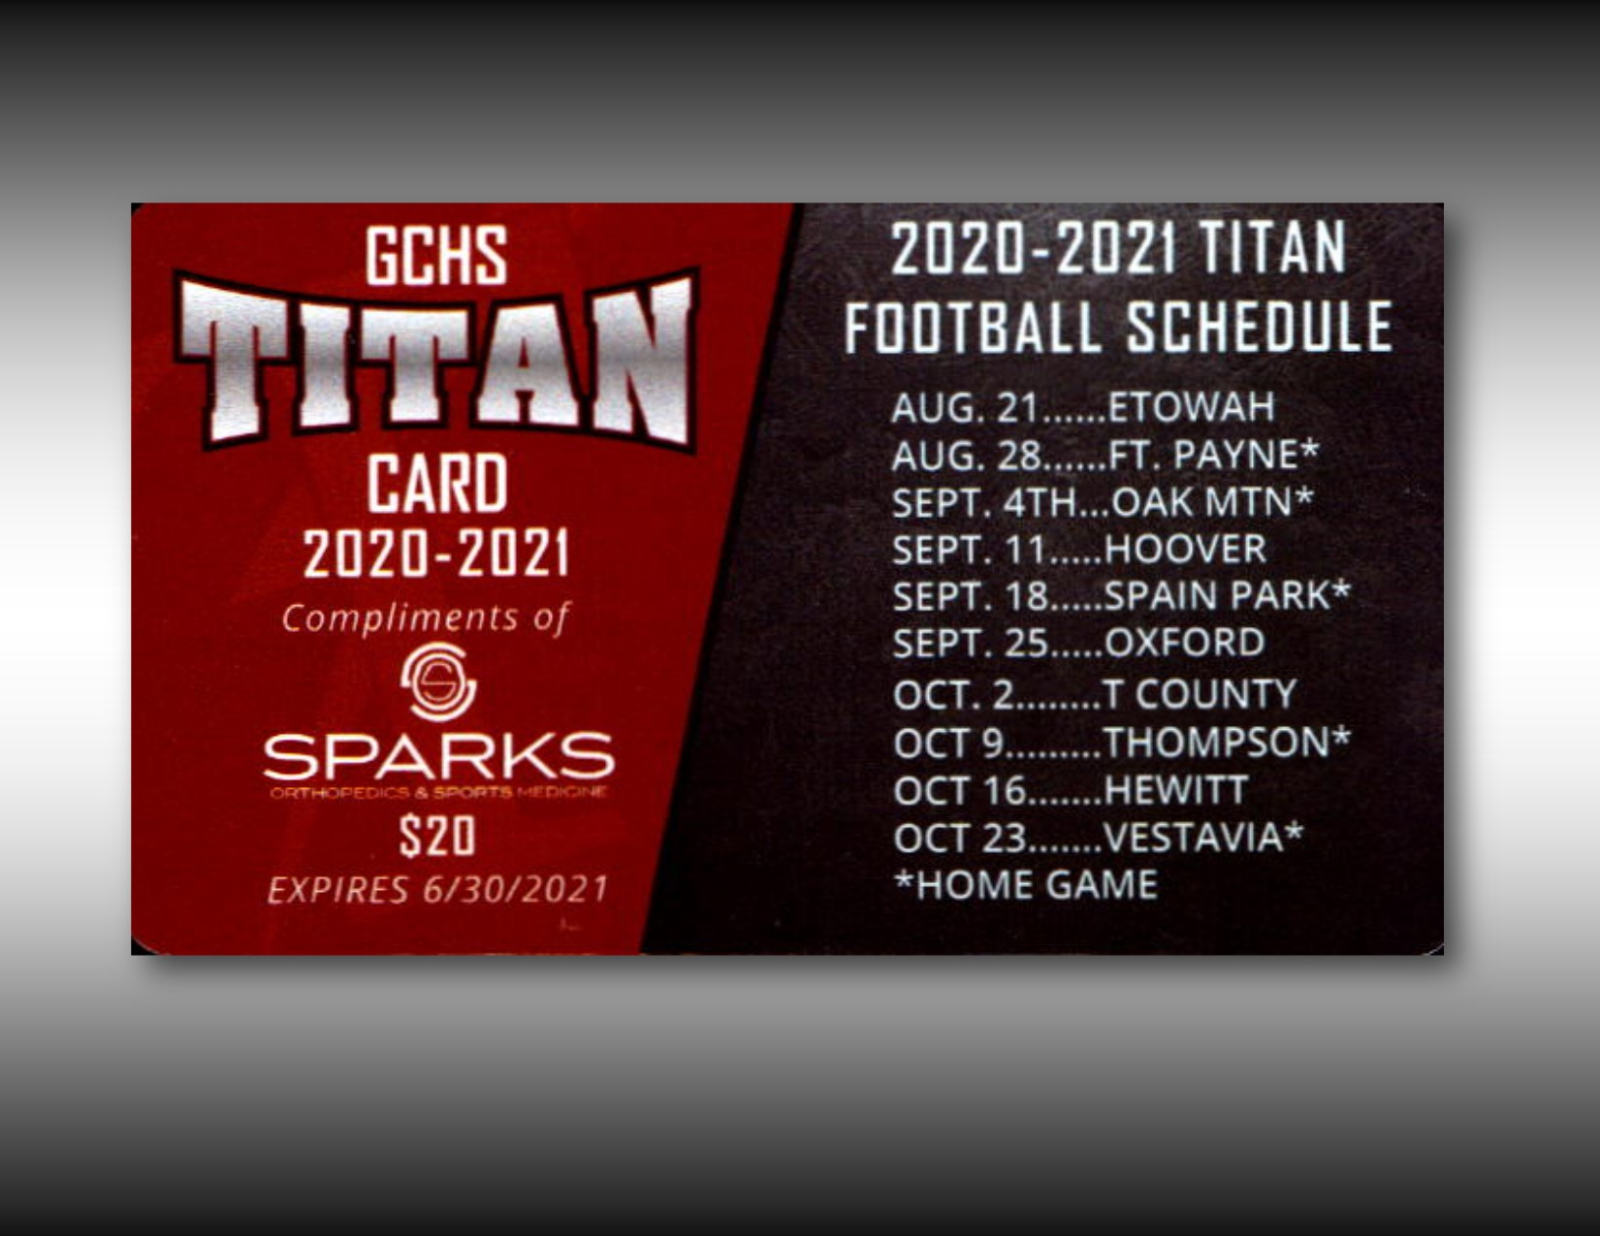 TITAN DISCOUNT CARDS ON SALE NOW !!!